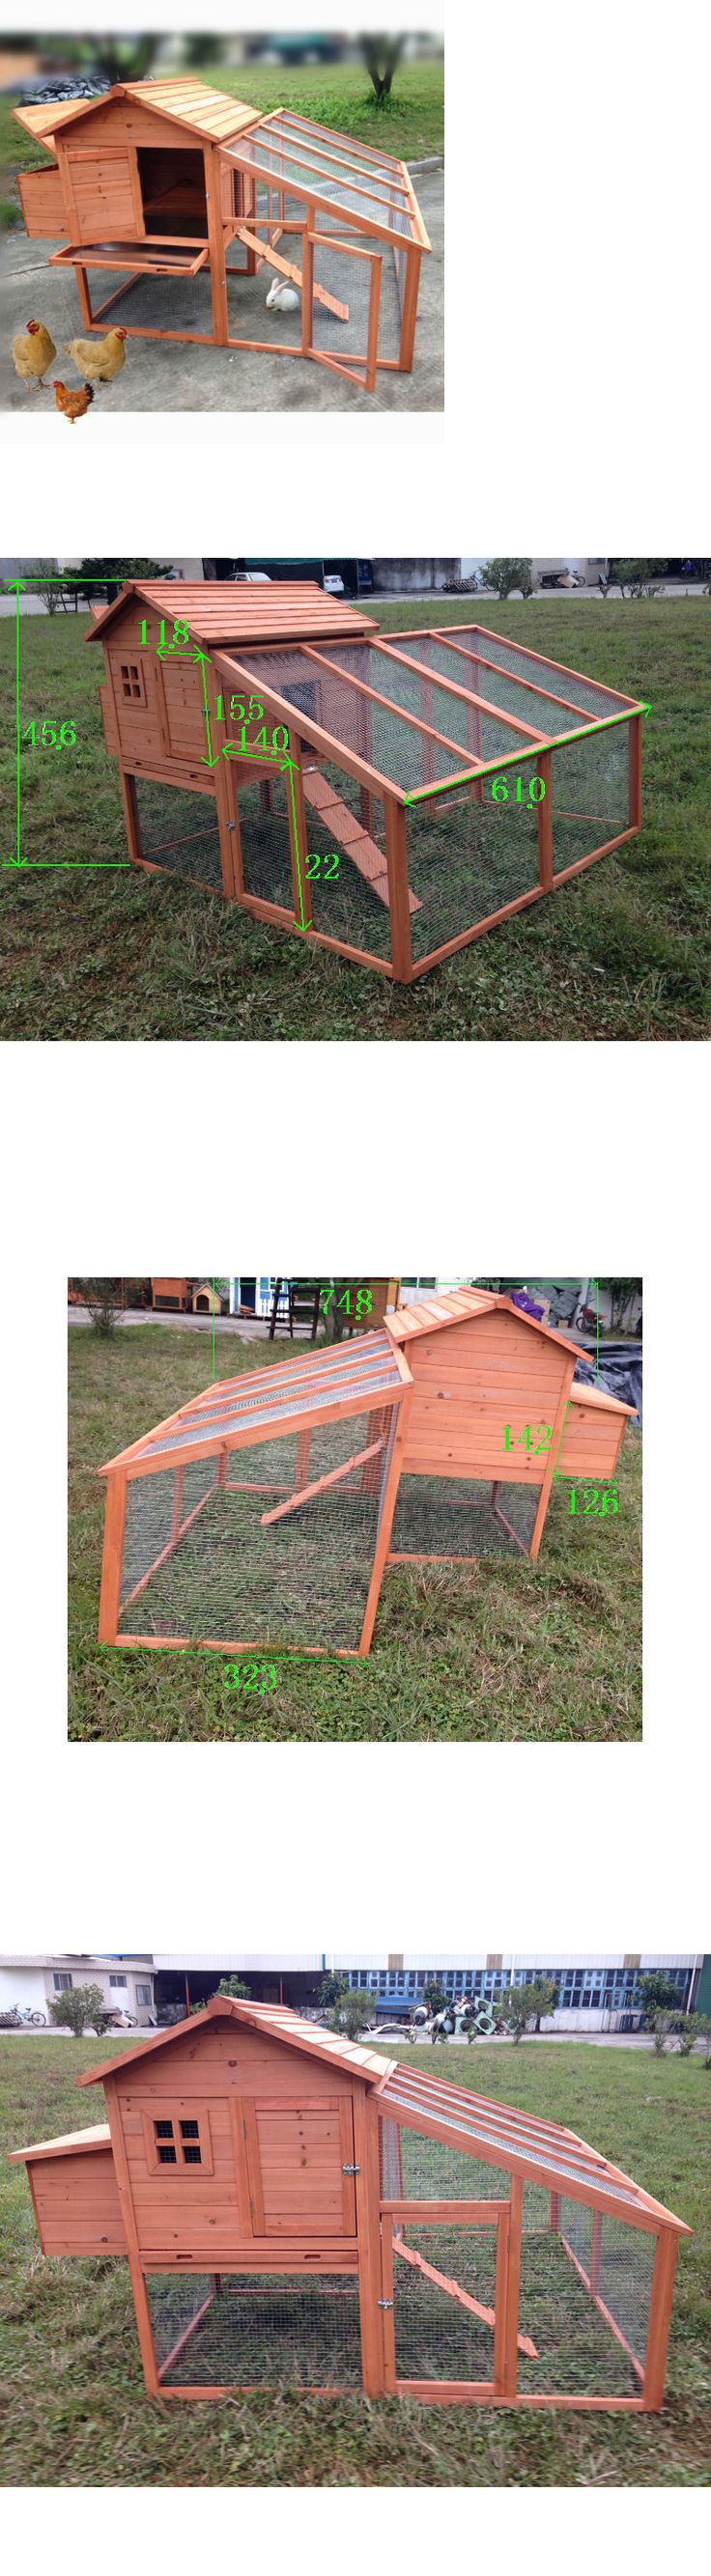 Backyard Poultry Supplies 177801: 74 Wooden Chicken Coop Rabbit Hutch Pet Cage Backyard Animal Poultry Nest Cage -> BUY IT NOW ONLY: $227.95 on eBay!